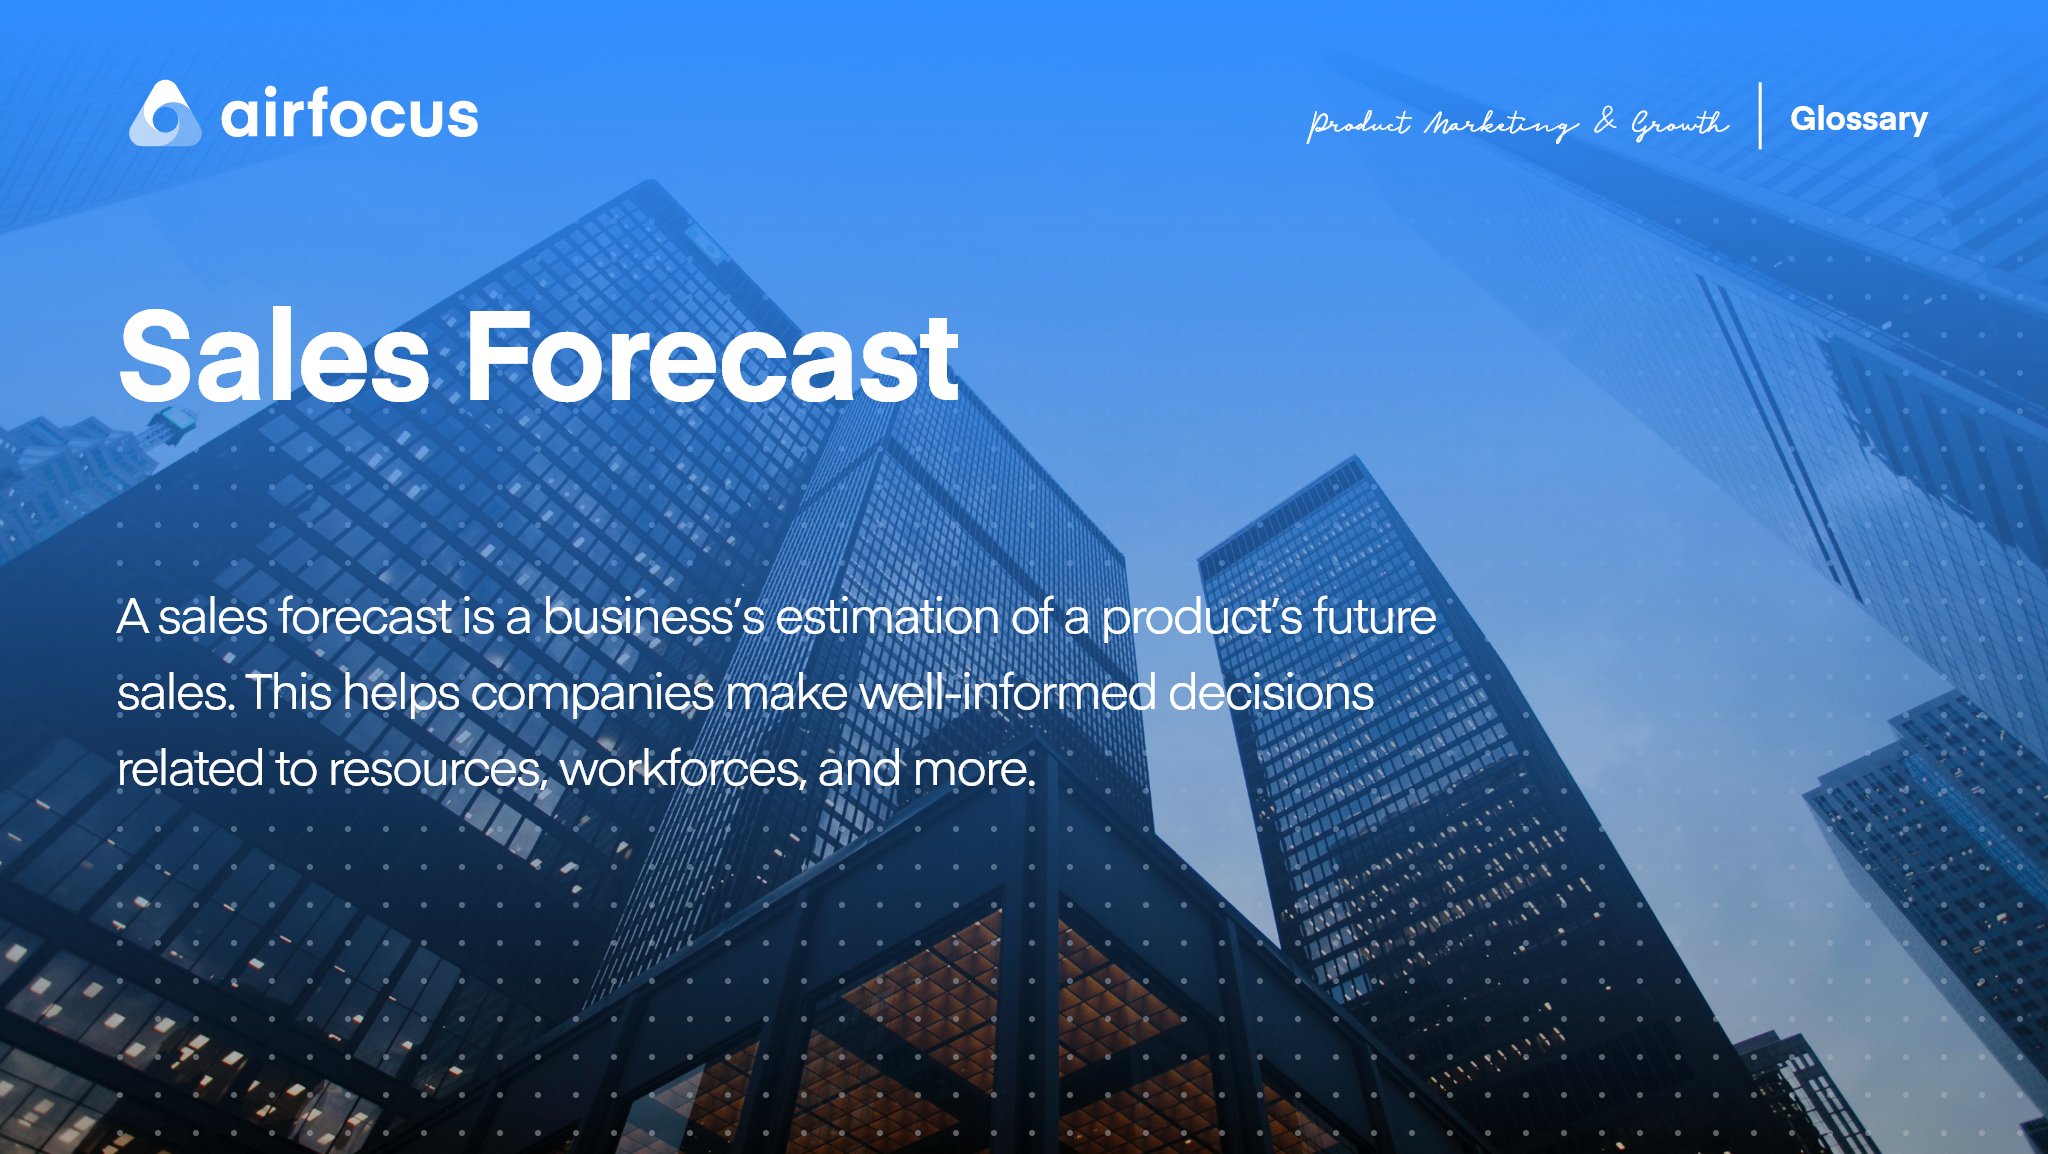 What is a Sales Forecast